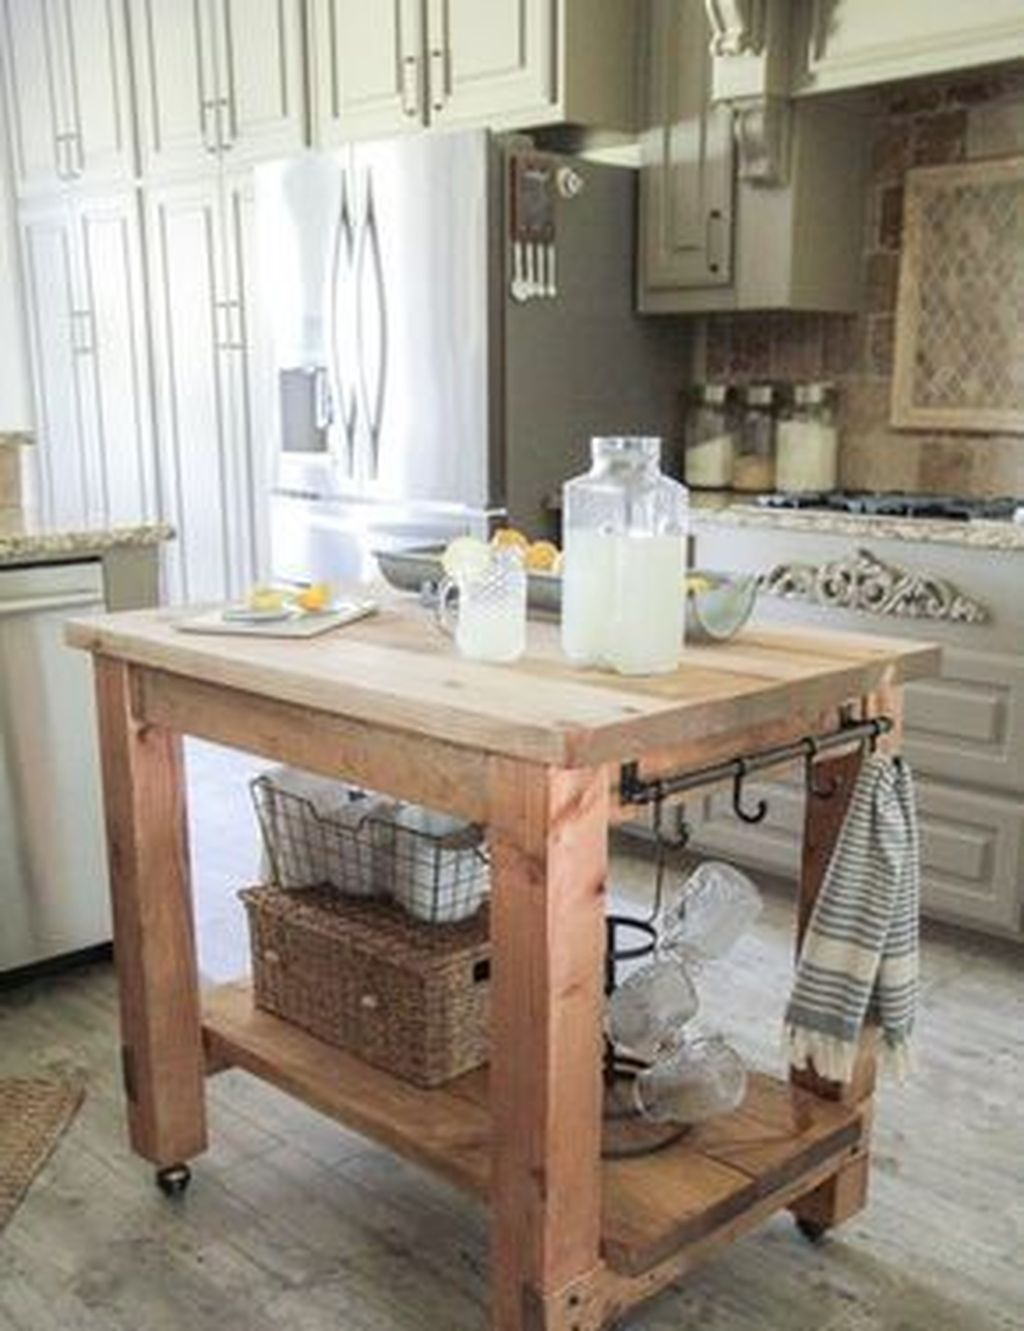 Cool Diy Kitchen Design Ideas You Will Definitely Want To Keep 06